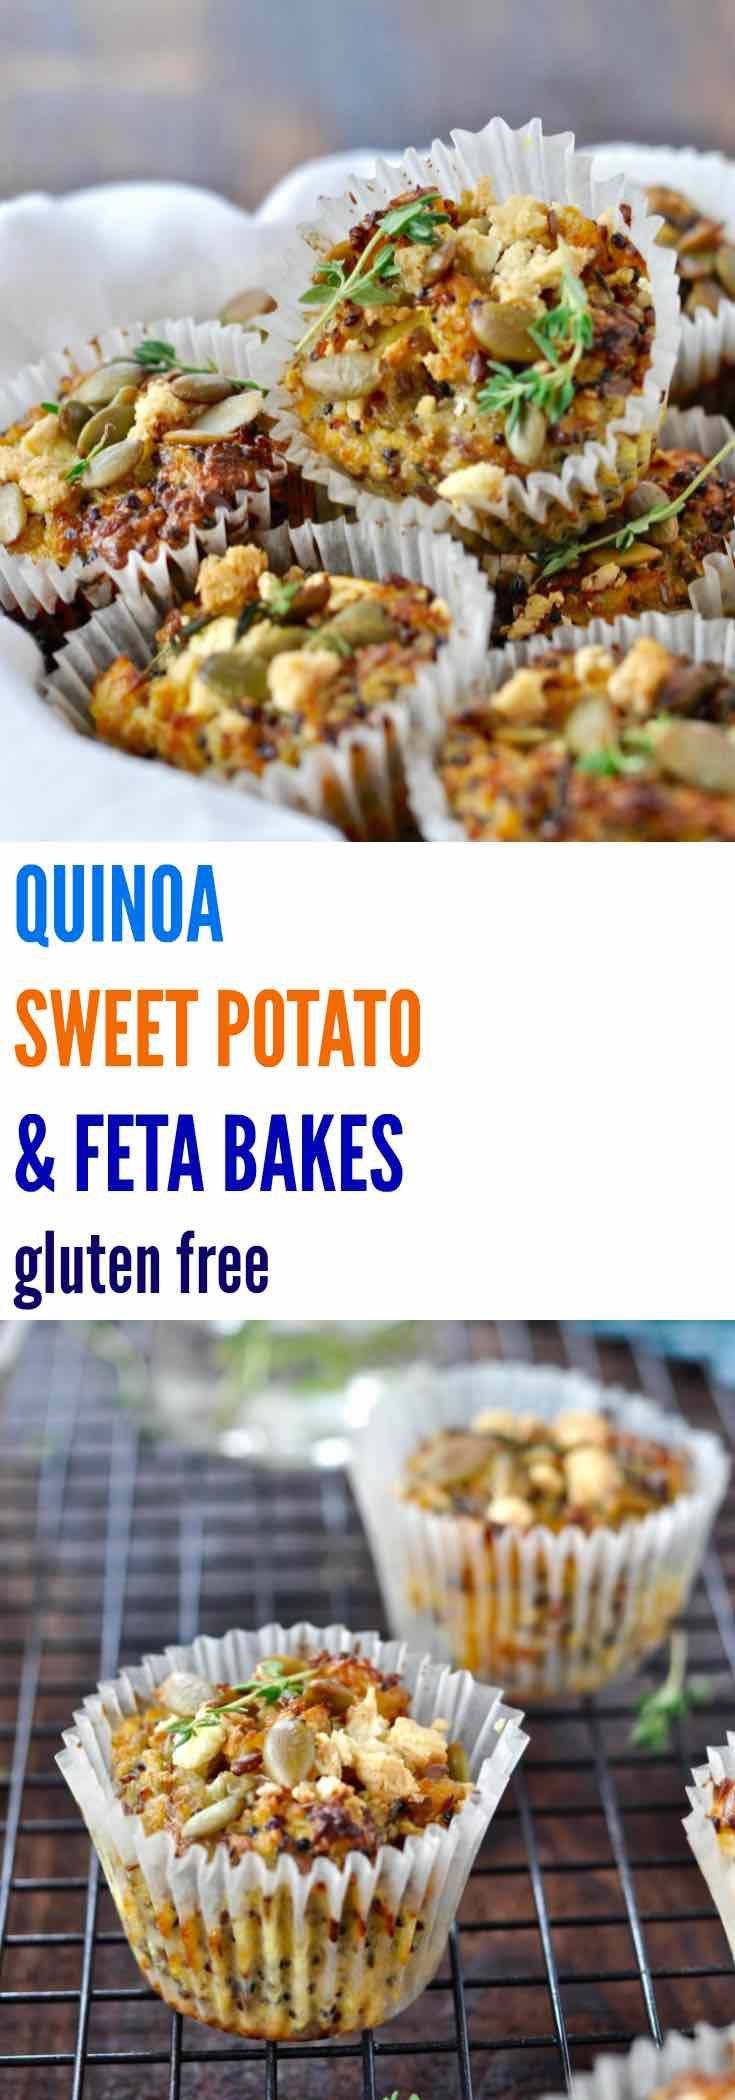 These healthy QUINOA, SWEET POTATO & FETA BAKES are gluten free and freeze…